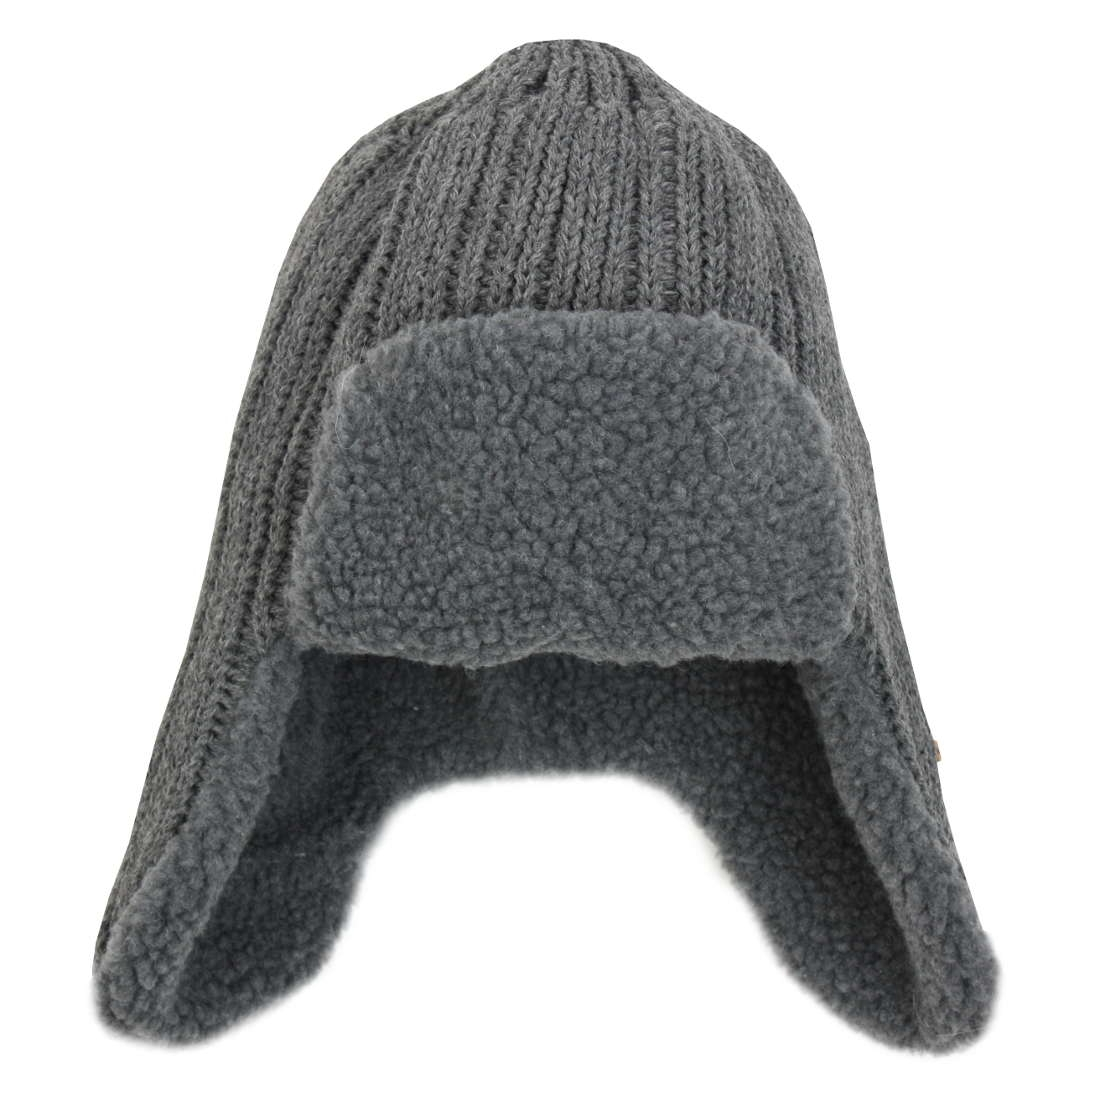 2cdb84db Starling Hat | Country Accessories | Naylors.com